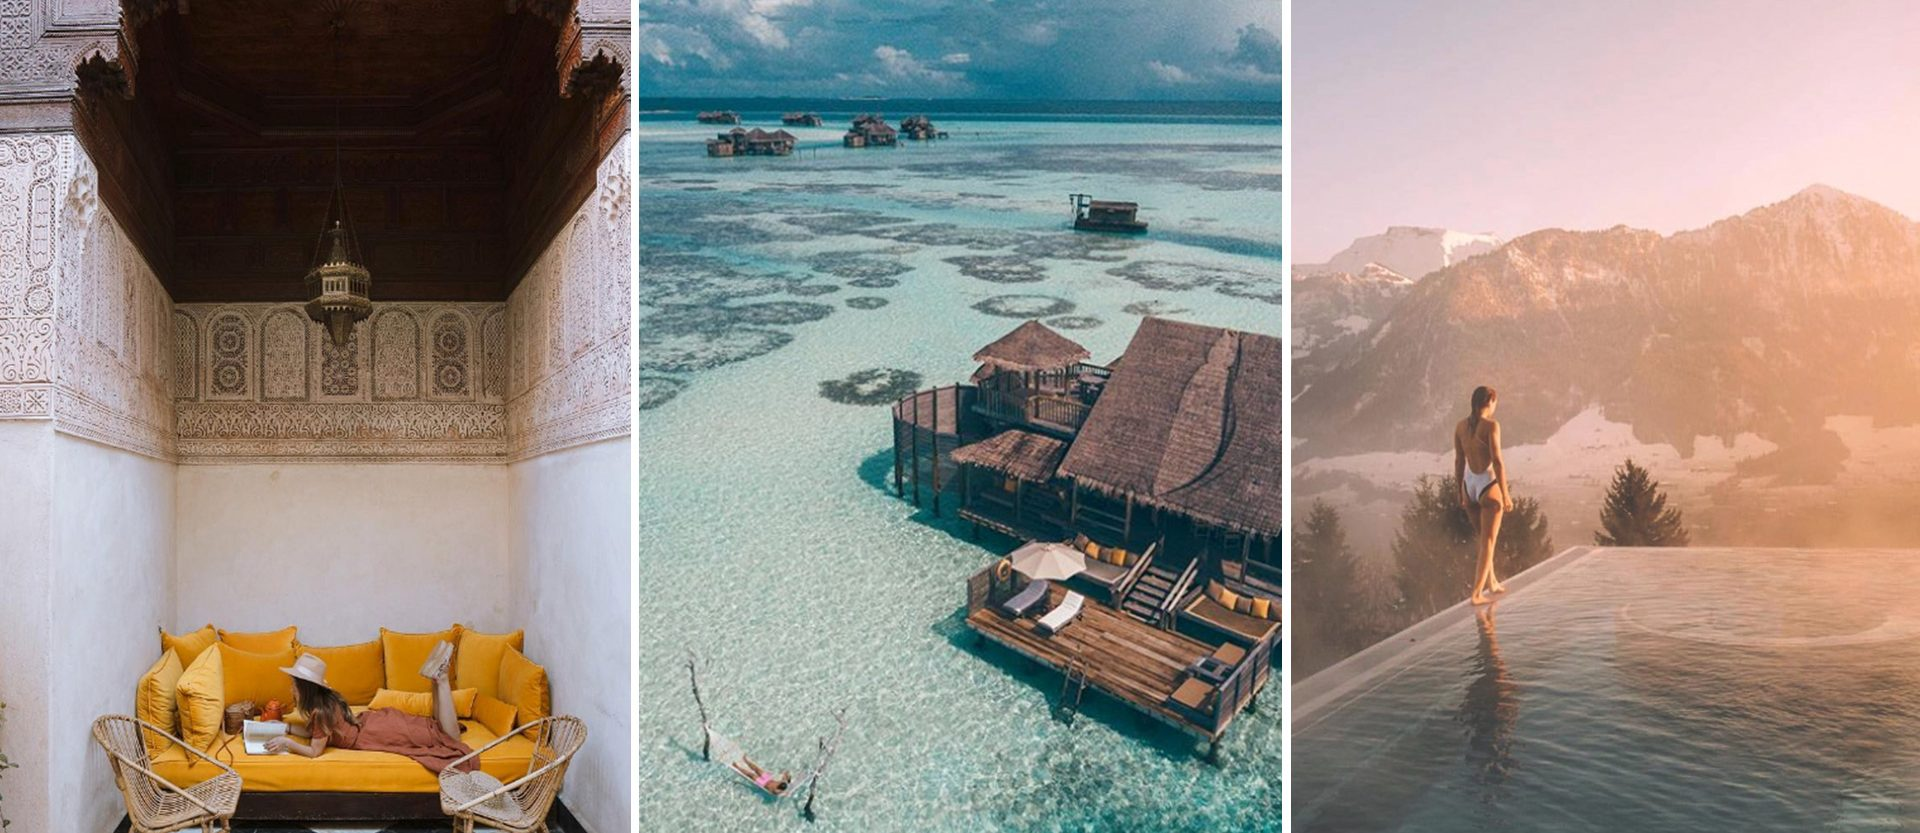 The 10 Most Instagrammable Hotels In The World Passport Magazine Kiwi Collection